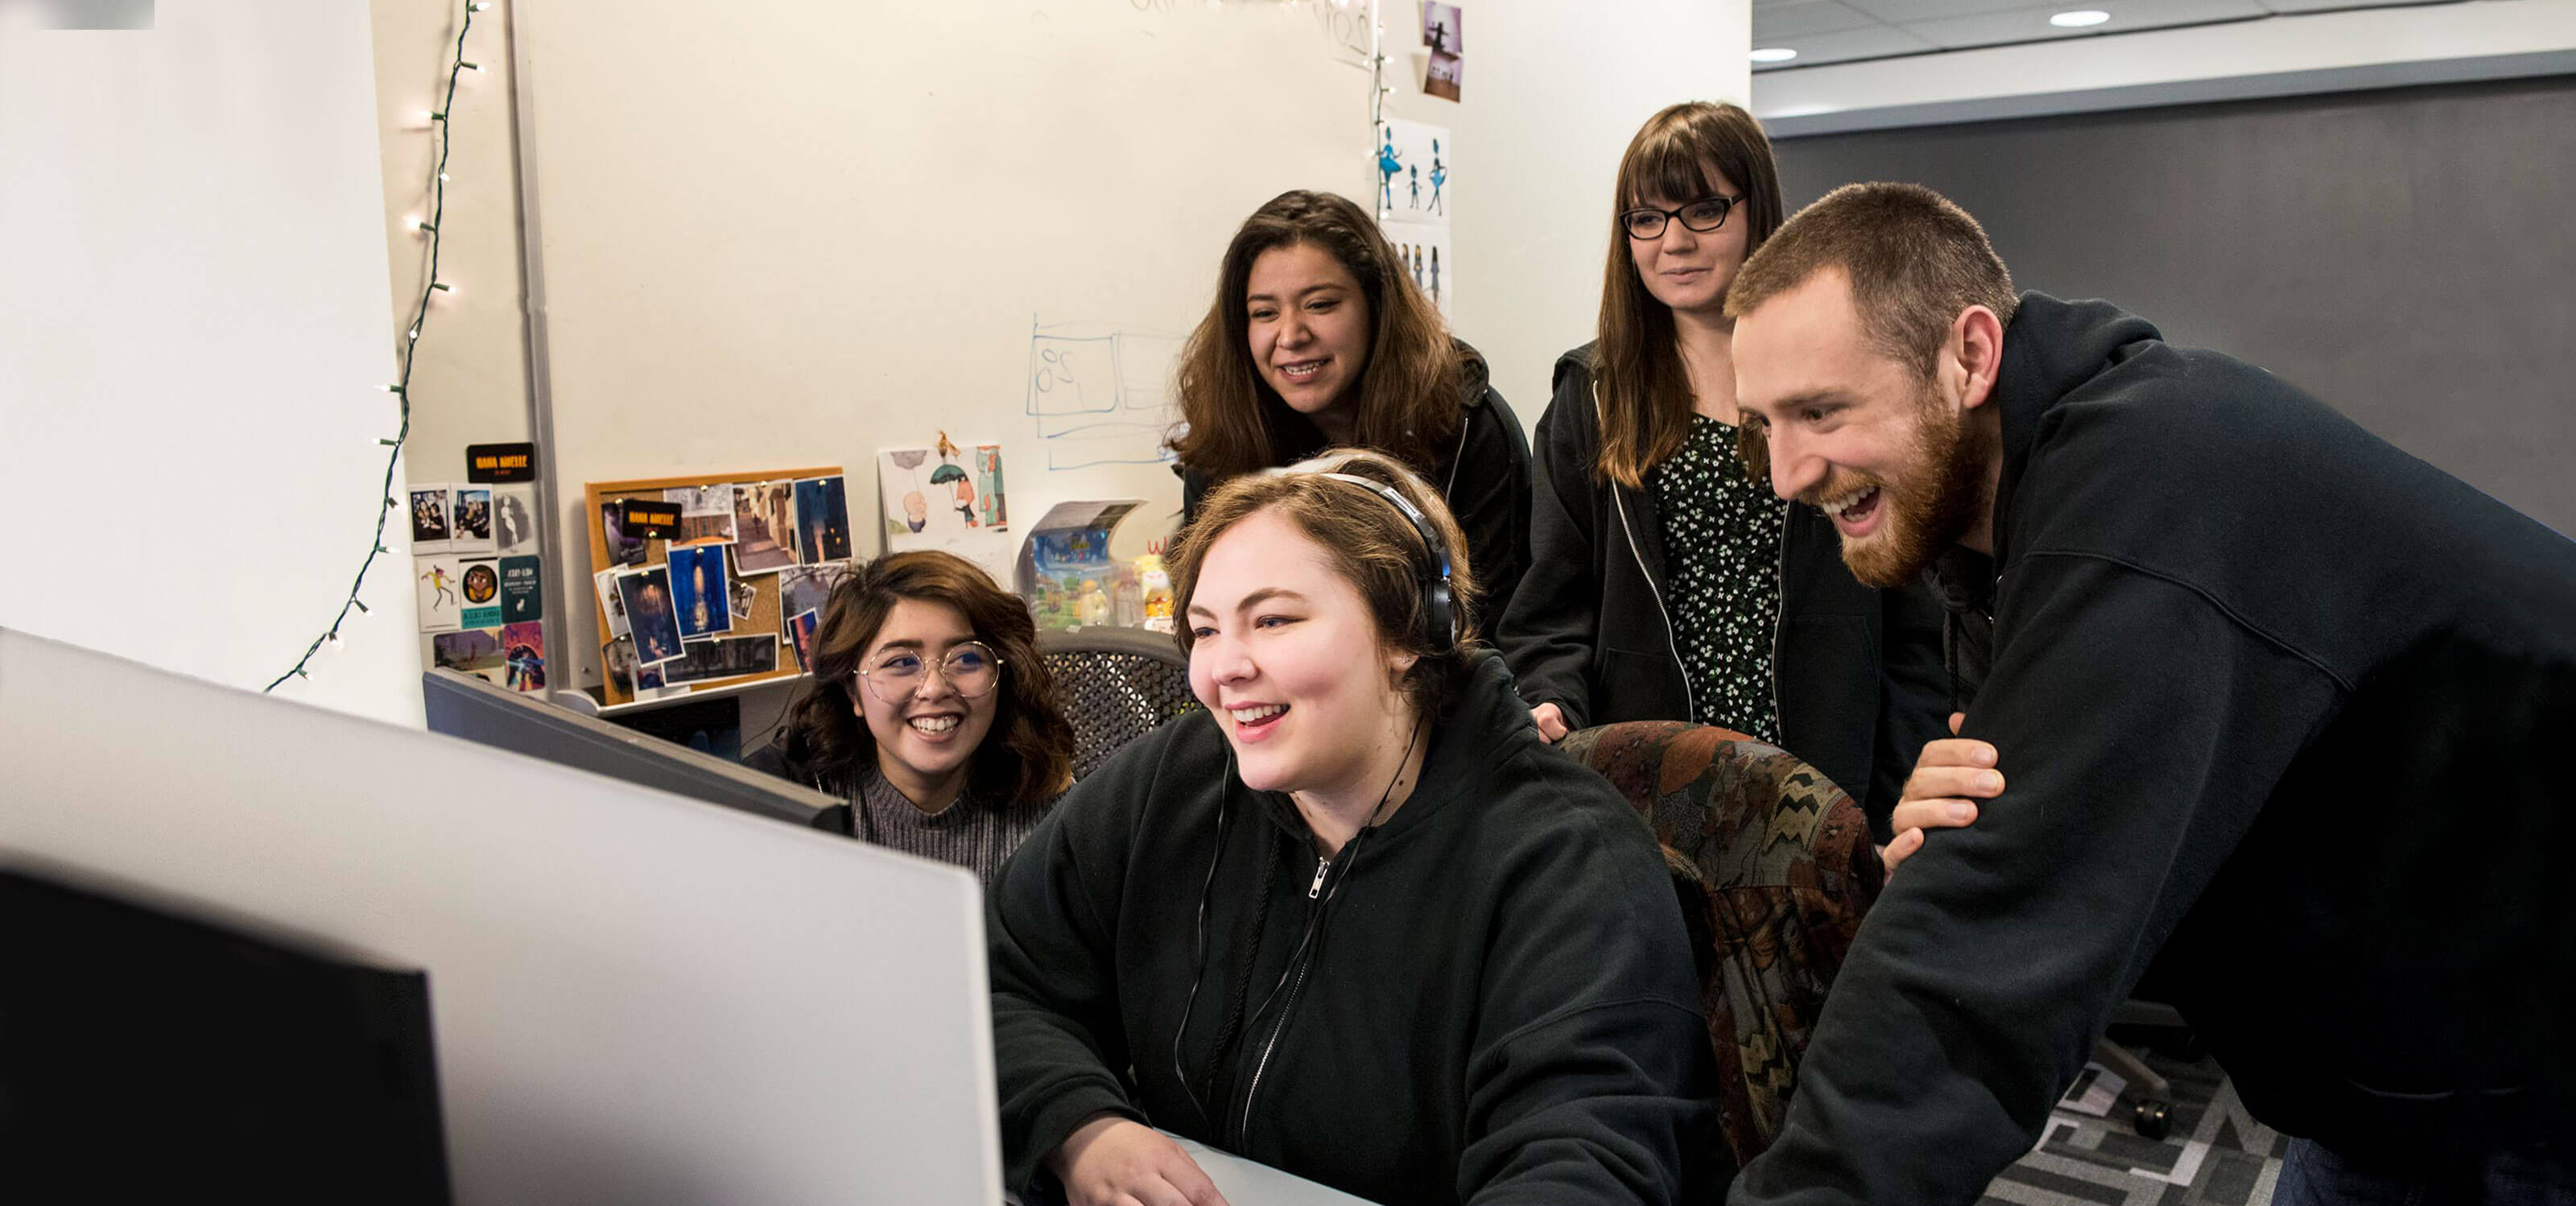 A group of smiling people stand behind a woman sitting at a computer monitor, looking over her shoulder.